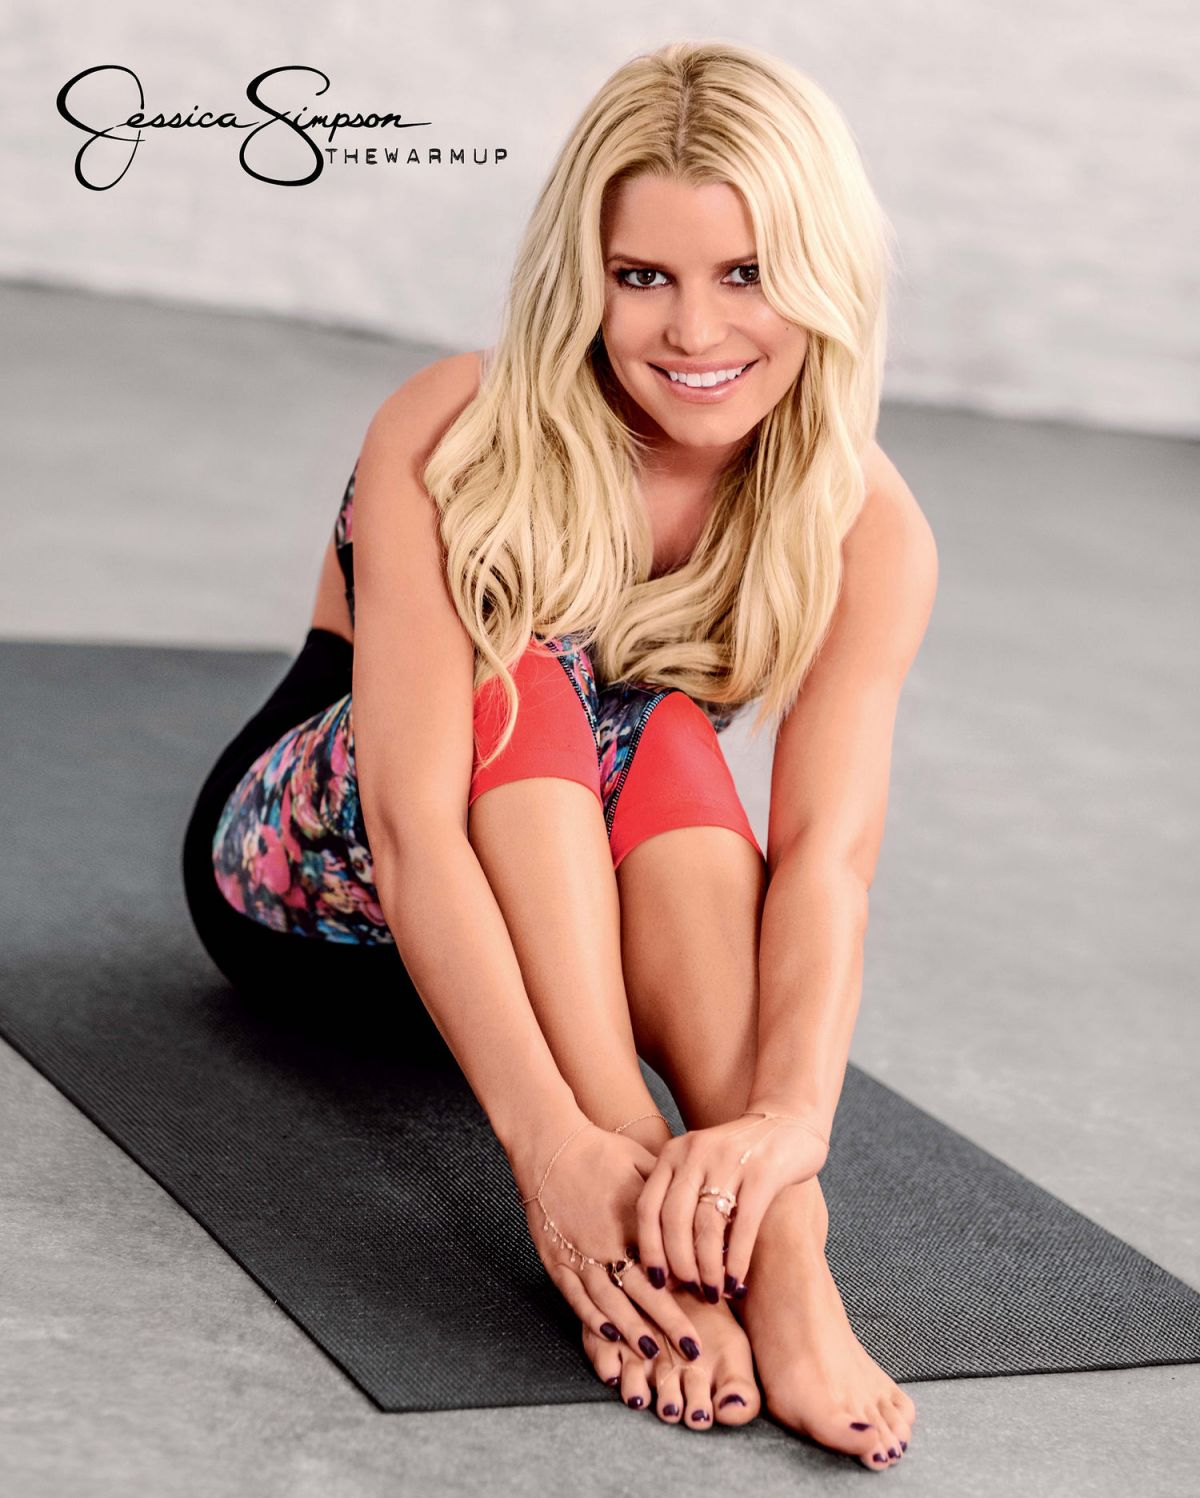 JESSICA SIMPSON - The Warmup Collection Promos